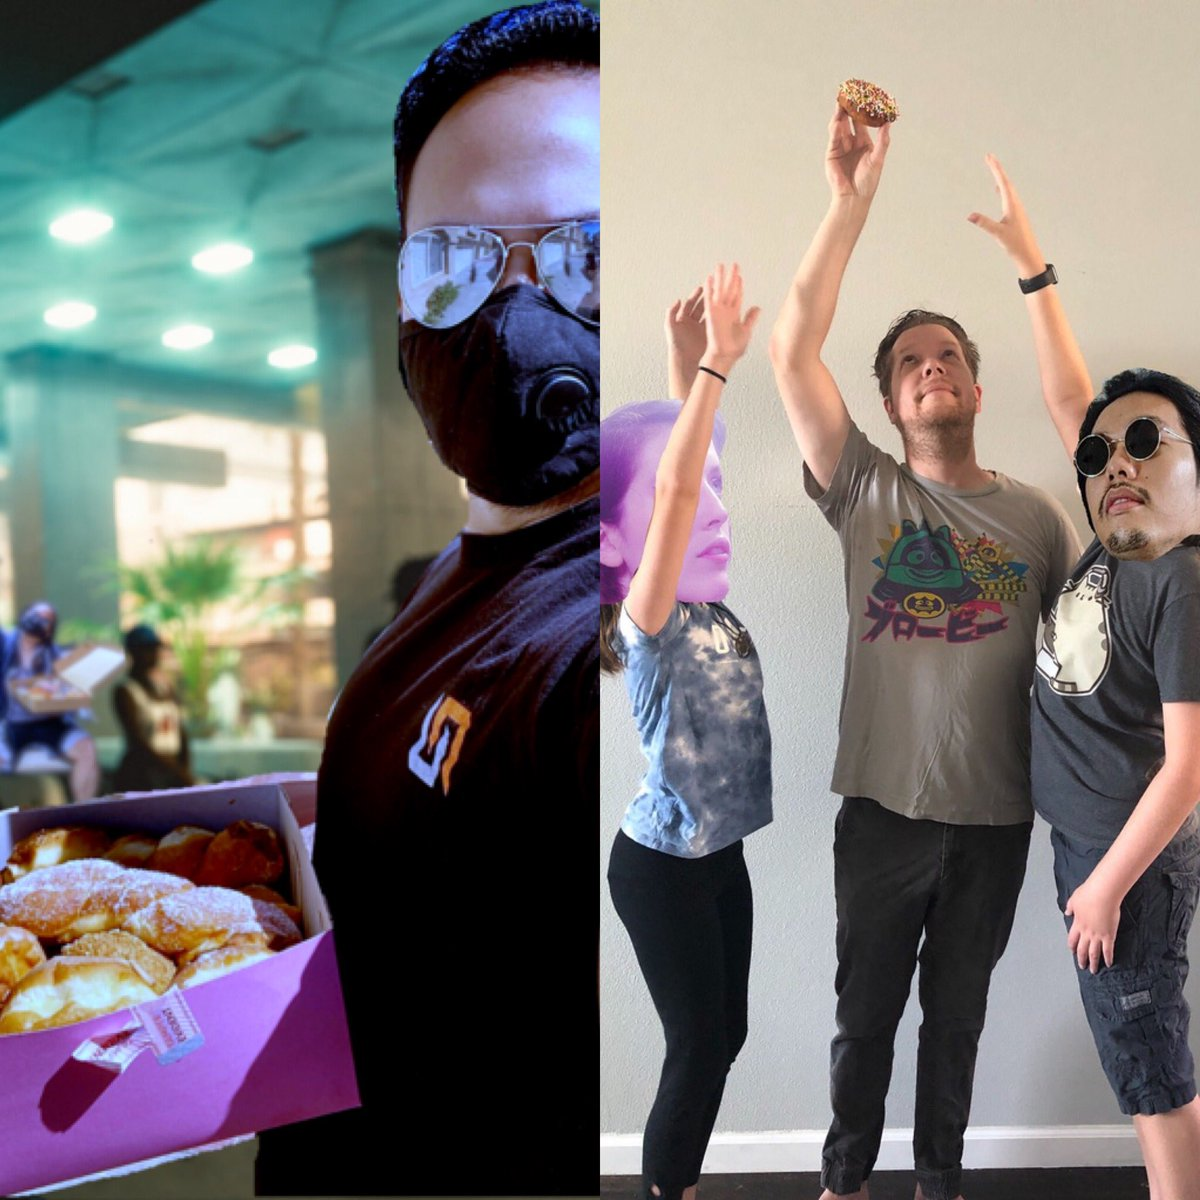 Latest DonutDay winners and Photoshop attacks! Congrats Dean, Mal and Robert!pic.twitter.com/XJHCO49mwg